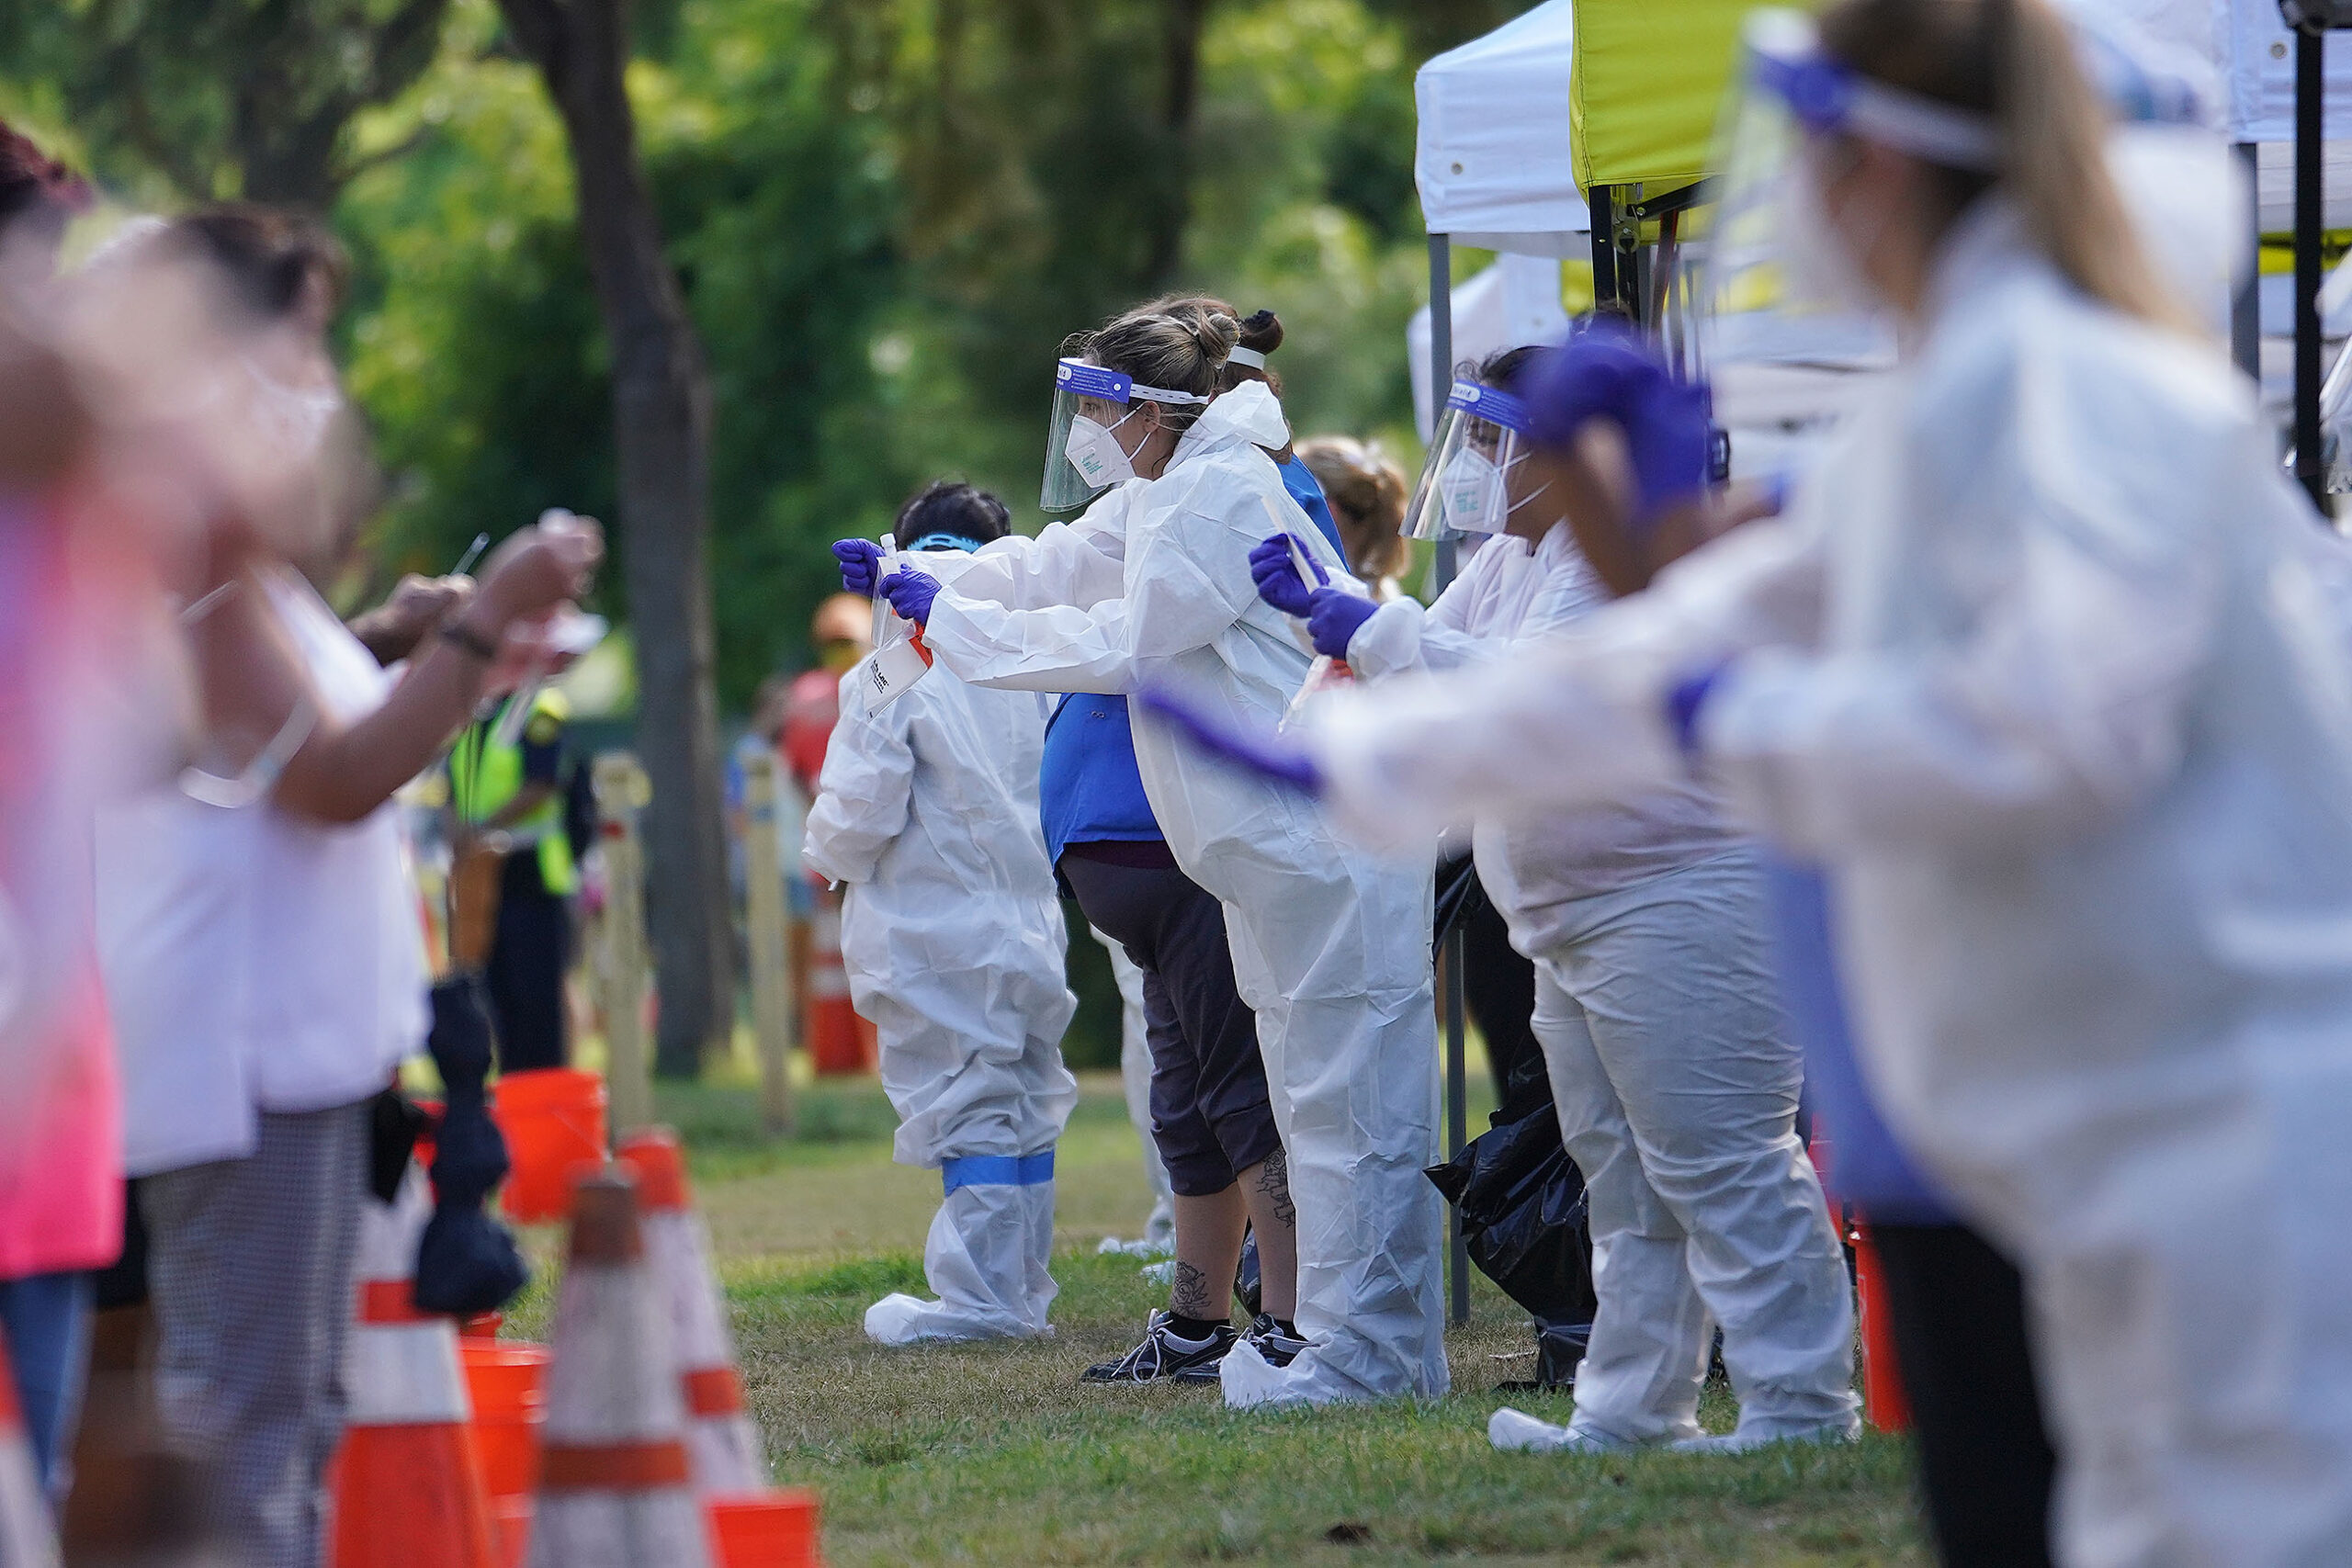 <p>Medical personnel helped with self-swab tests during a COVID-19 case surge in late summer. Hawaii's single-day case count hit a high of 355 in August, prompting another round of emergency regulations.</p>